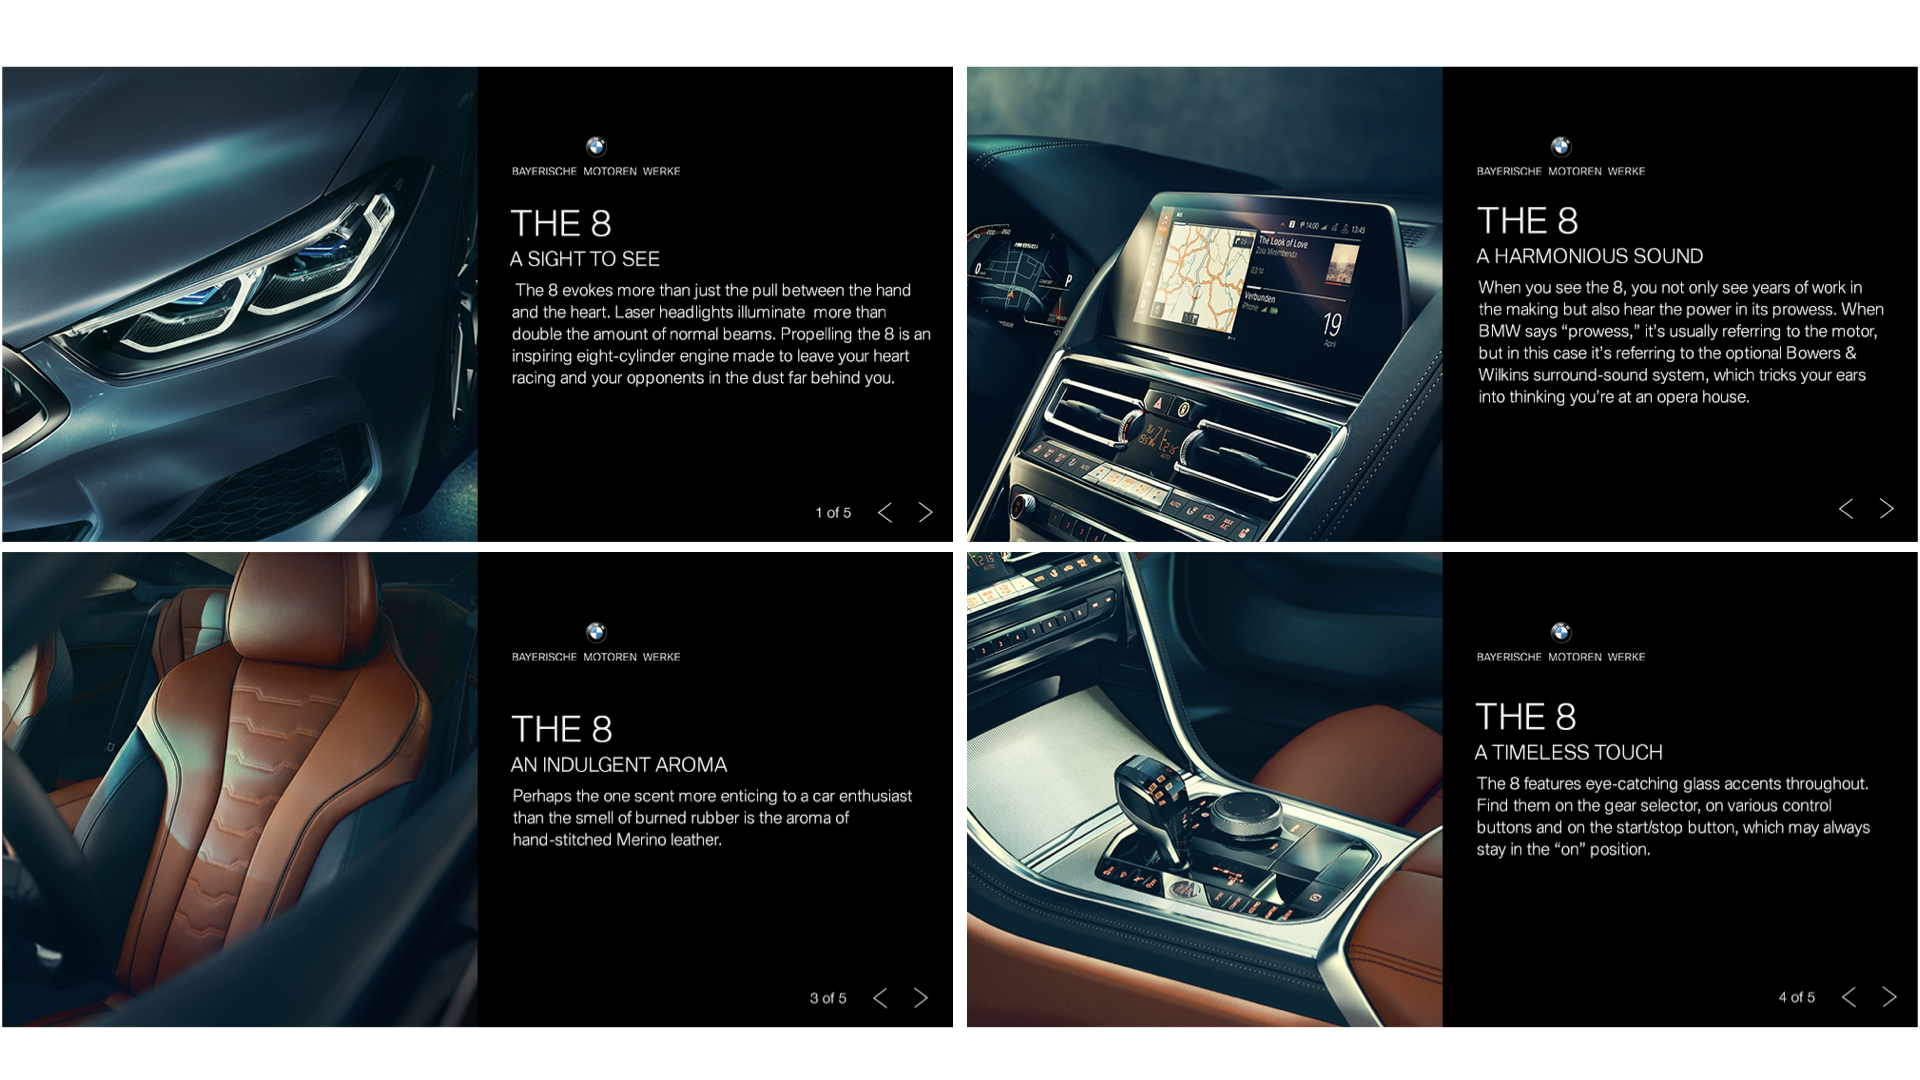 Above: An ad that rotated through different senses paralleled with notable features of the car.